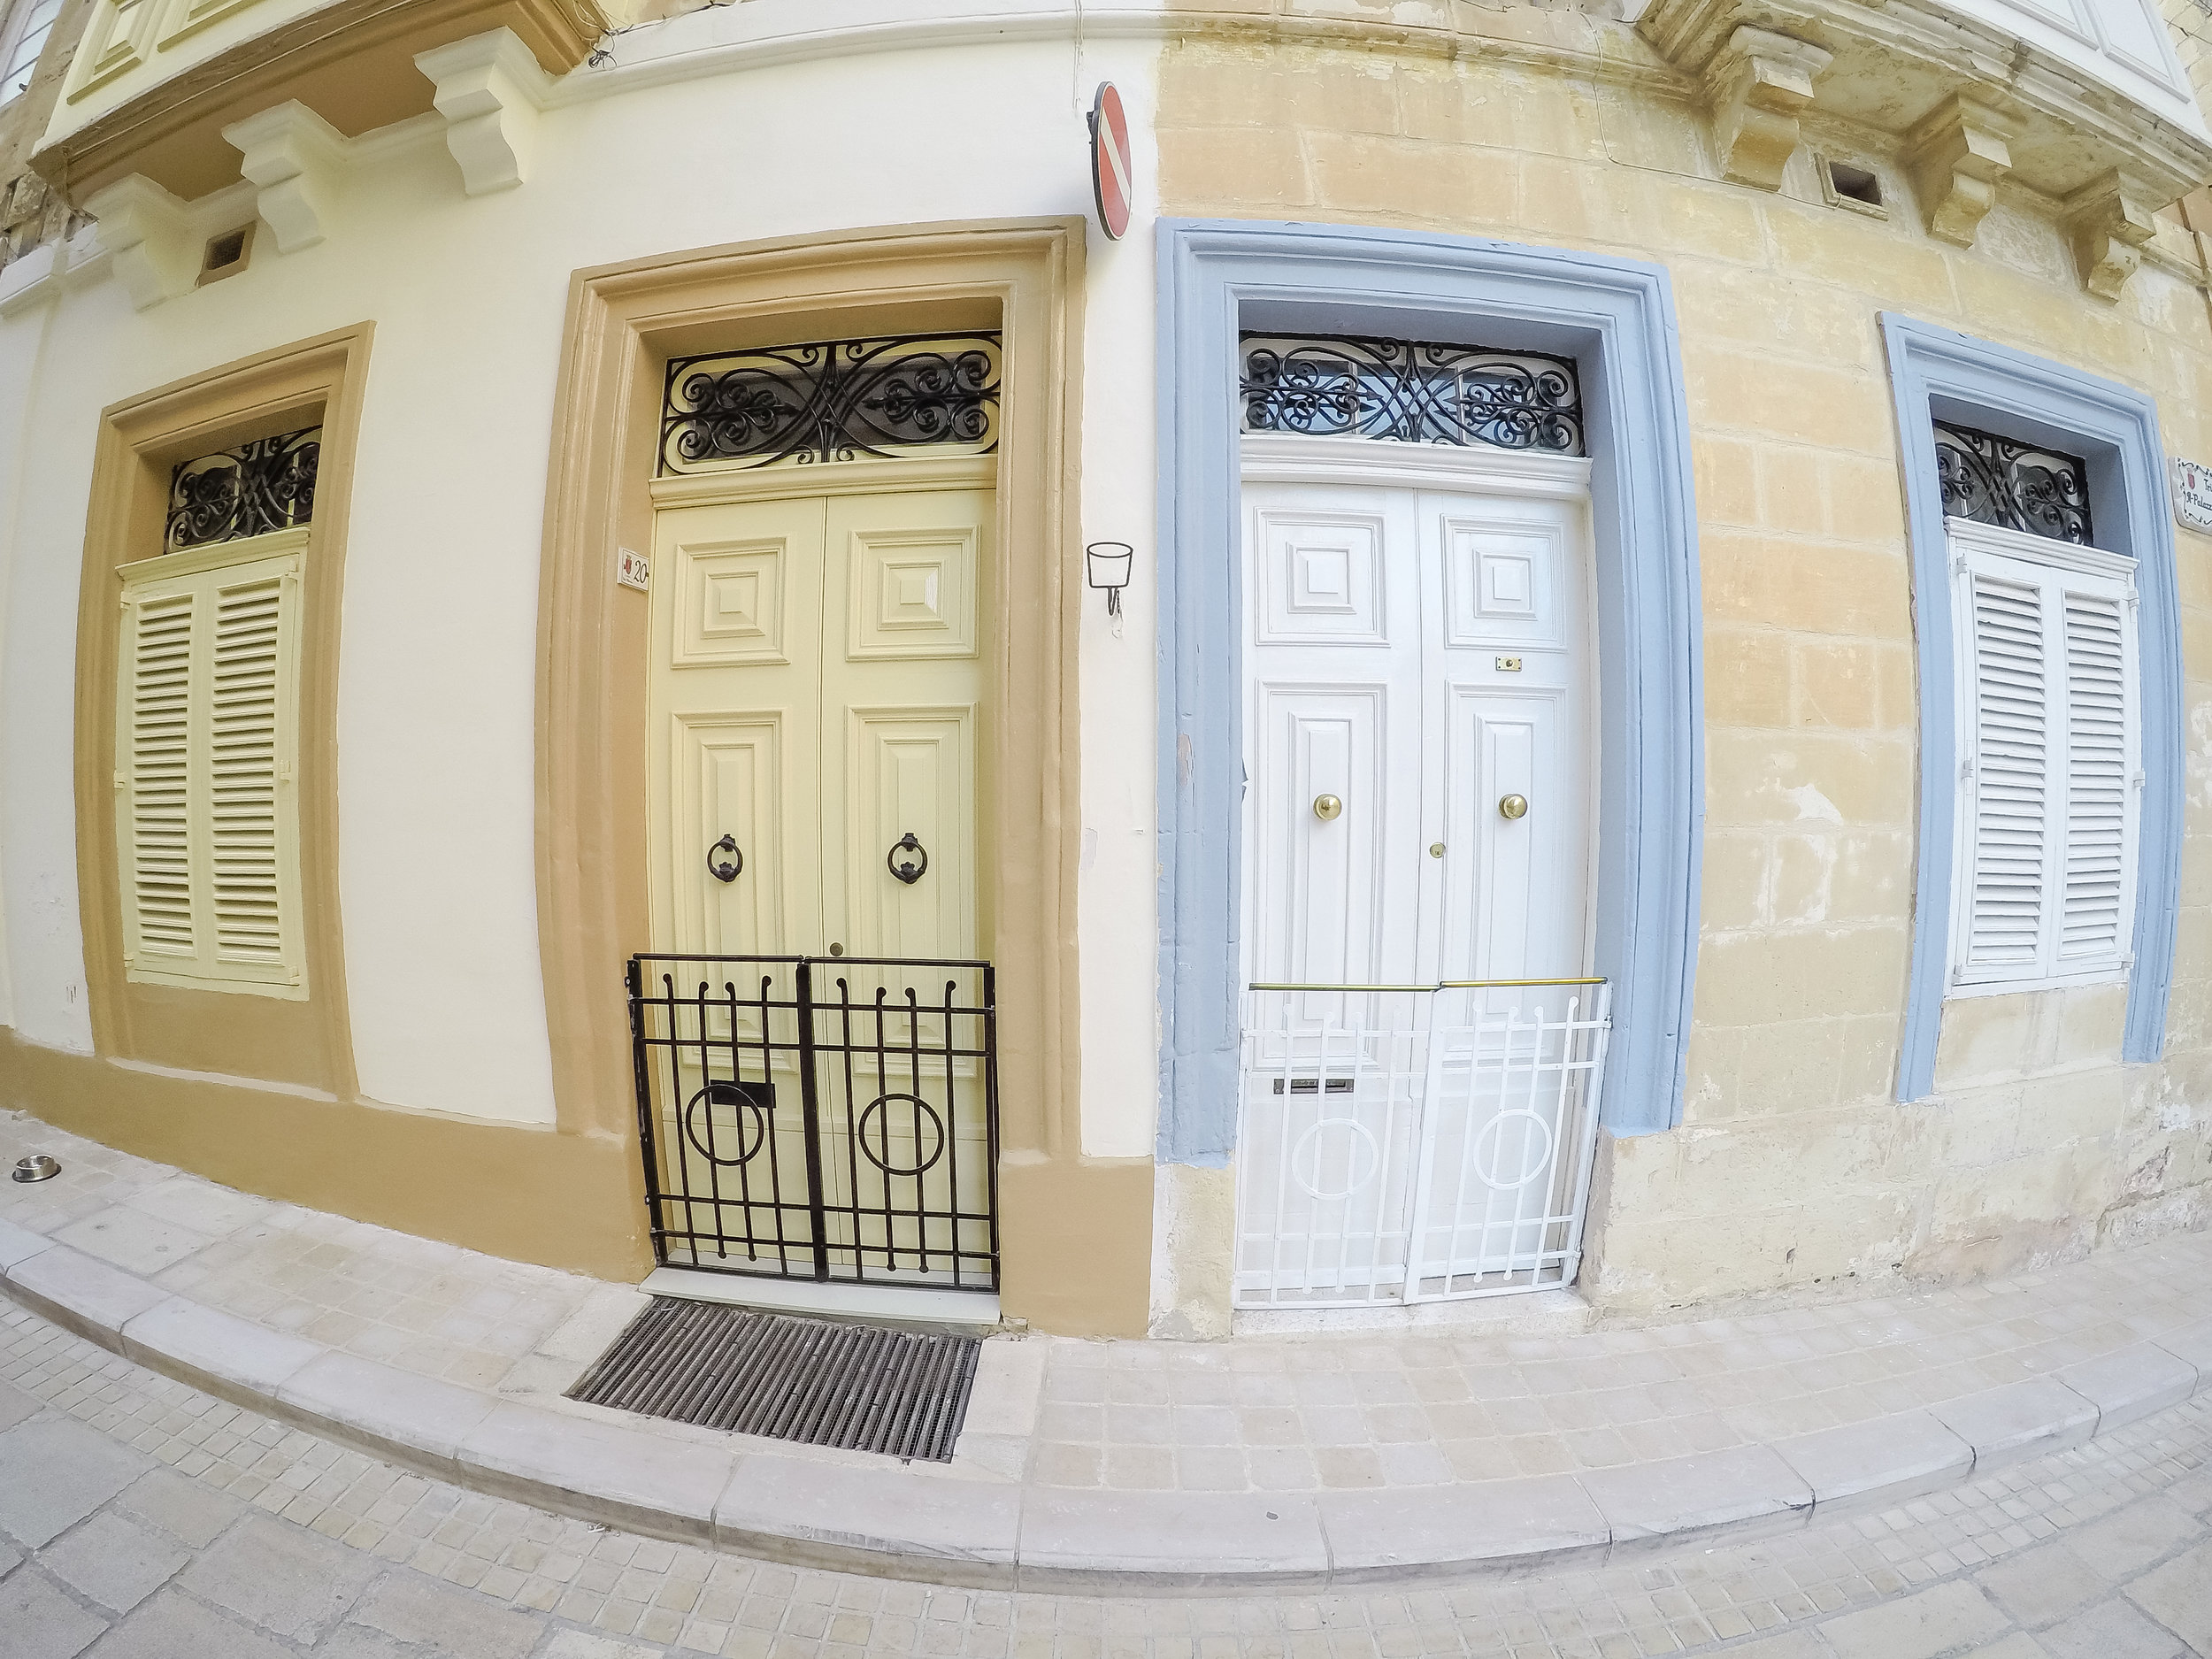 Maltese Street - Thinking About Appreciation For Quality In Malta | Malta, Europe | DoLessGetMoreDone.com | - GoPro Travel Documentary Photography - search for Liveability | Sustainability